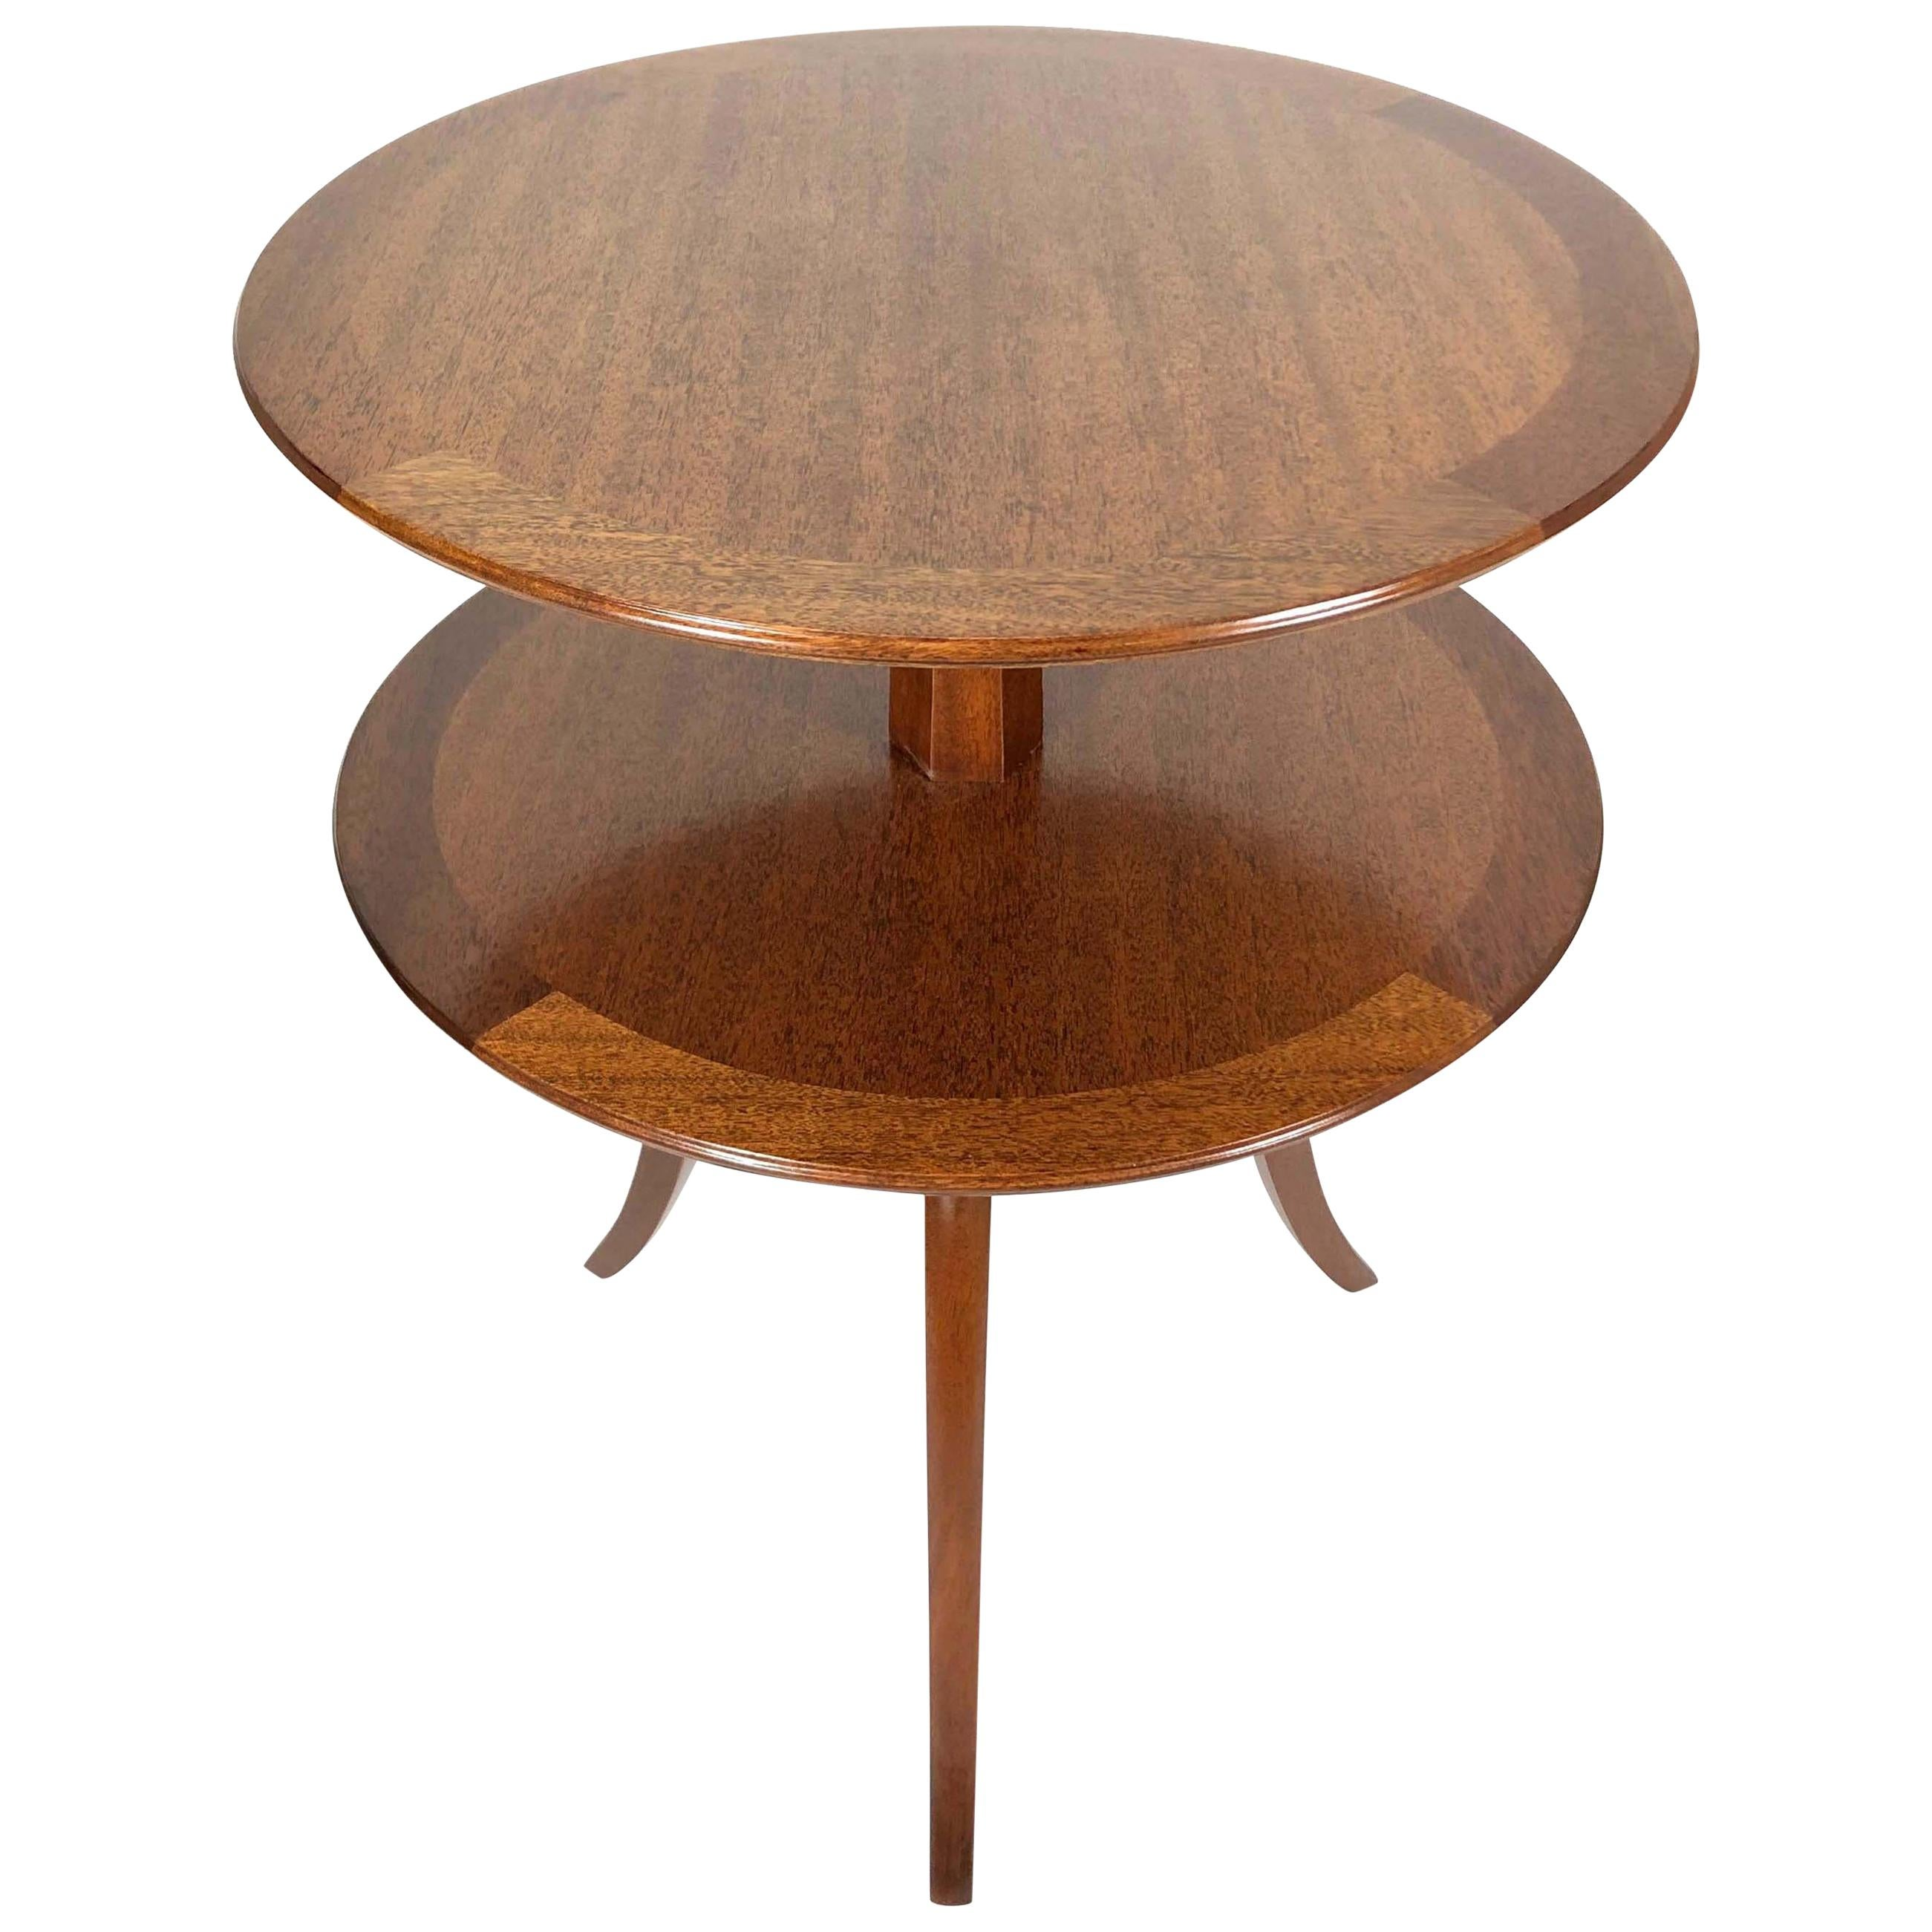 Two-Tier Mahogany Side Table by Edward Wormley for Dunbar